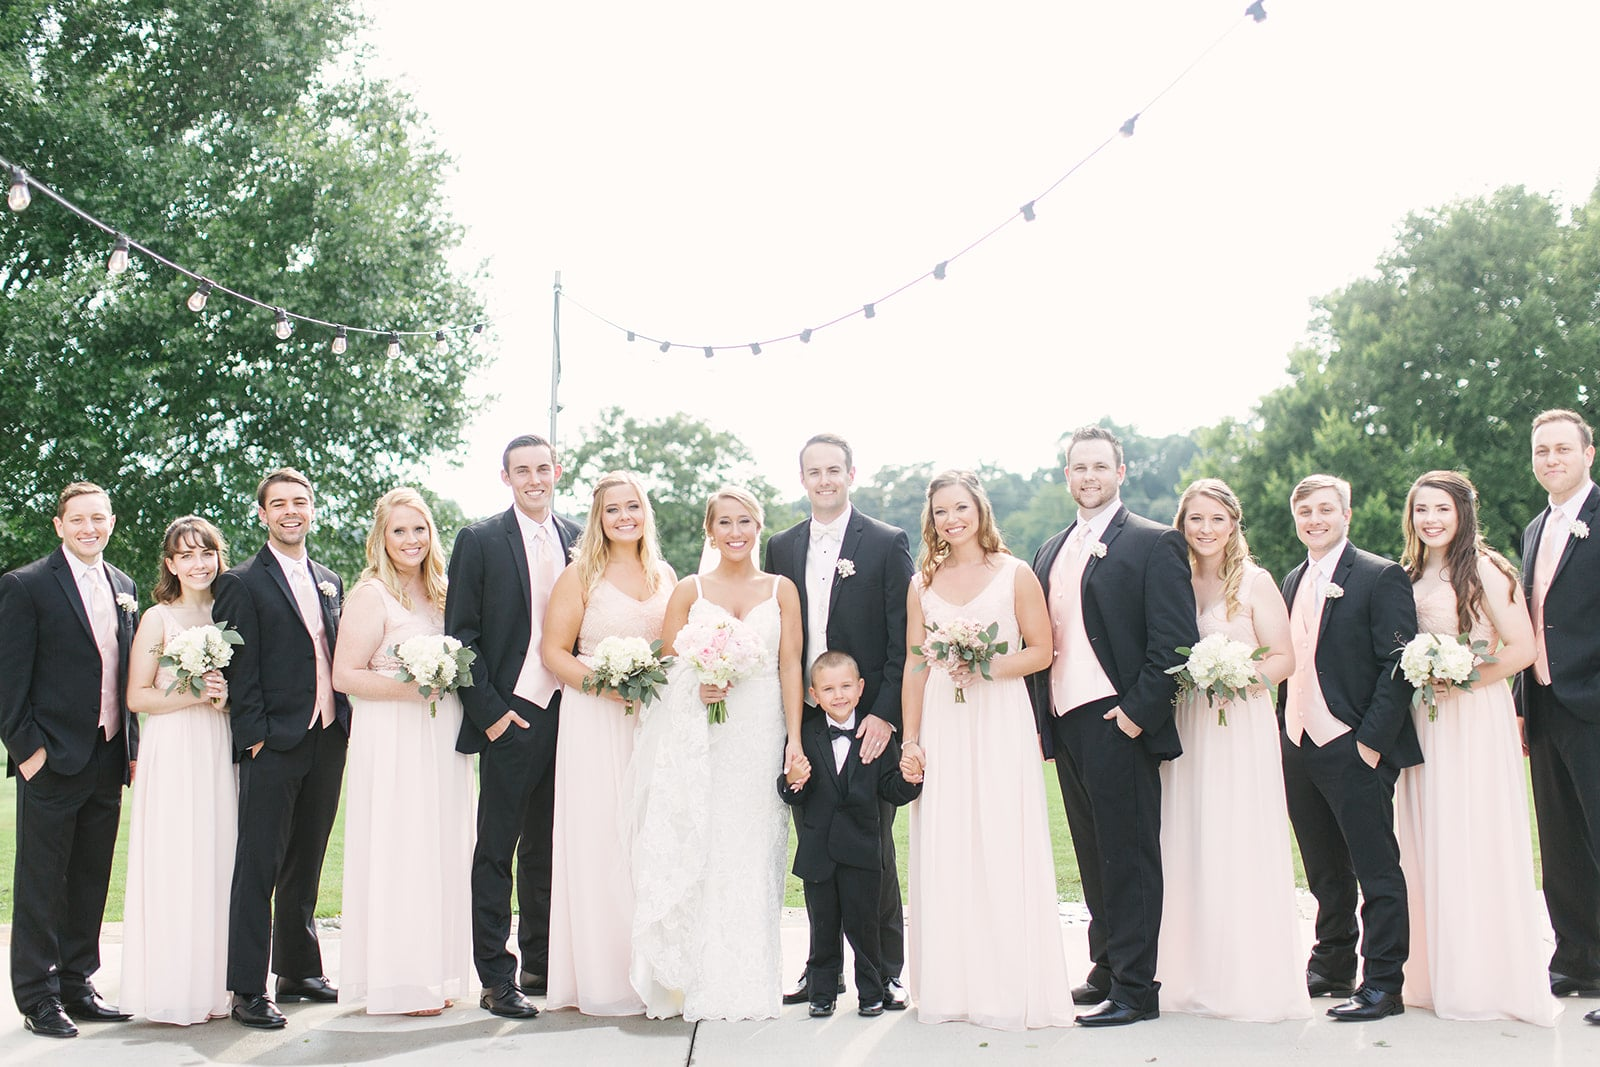 Paige Ryan Photography captures the bride and groom with their bridal party before their spring wedding at The Diary Barn